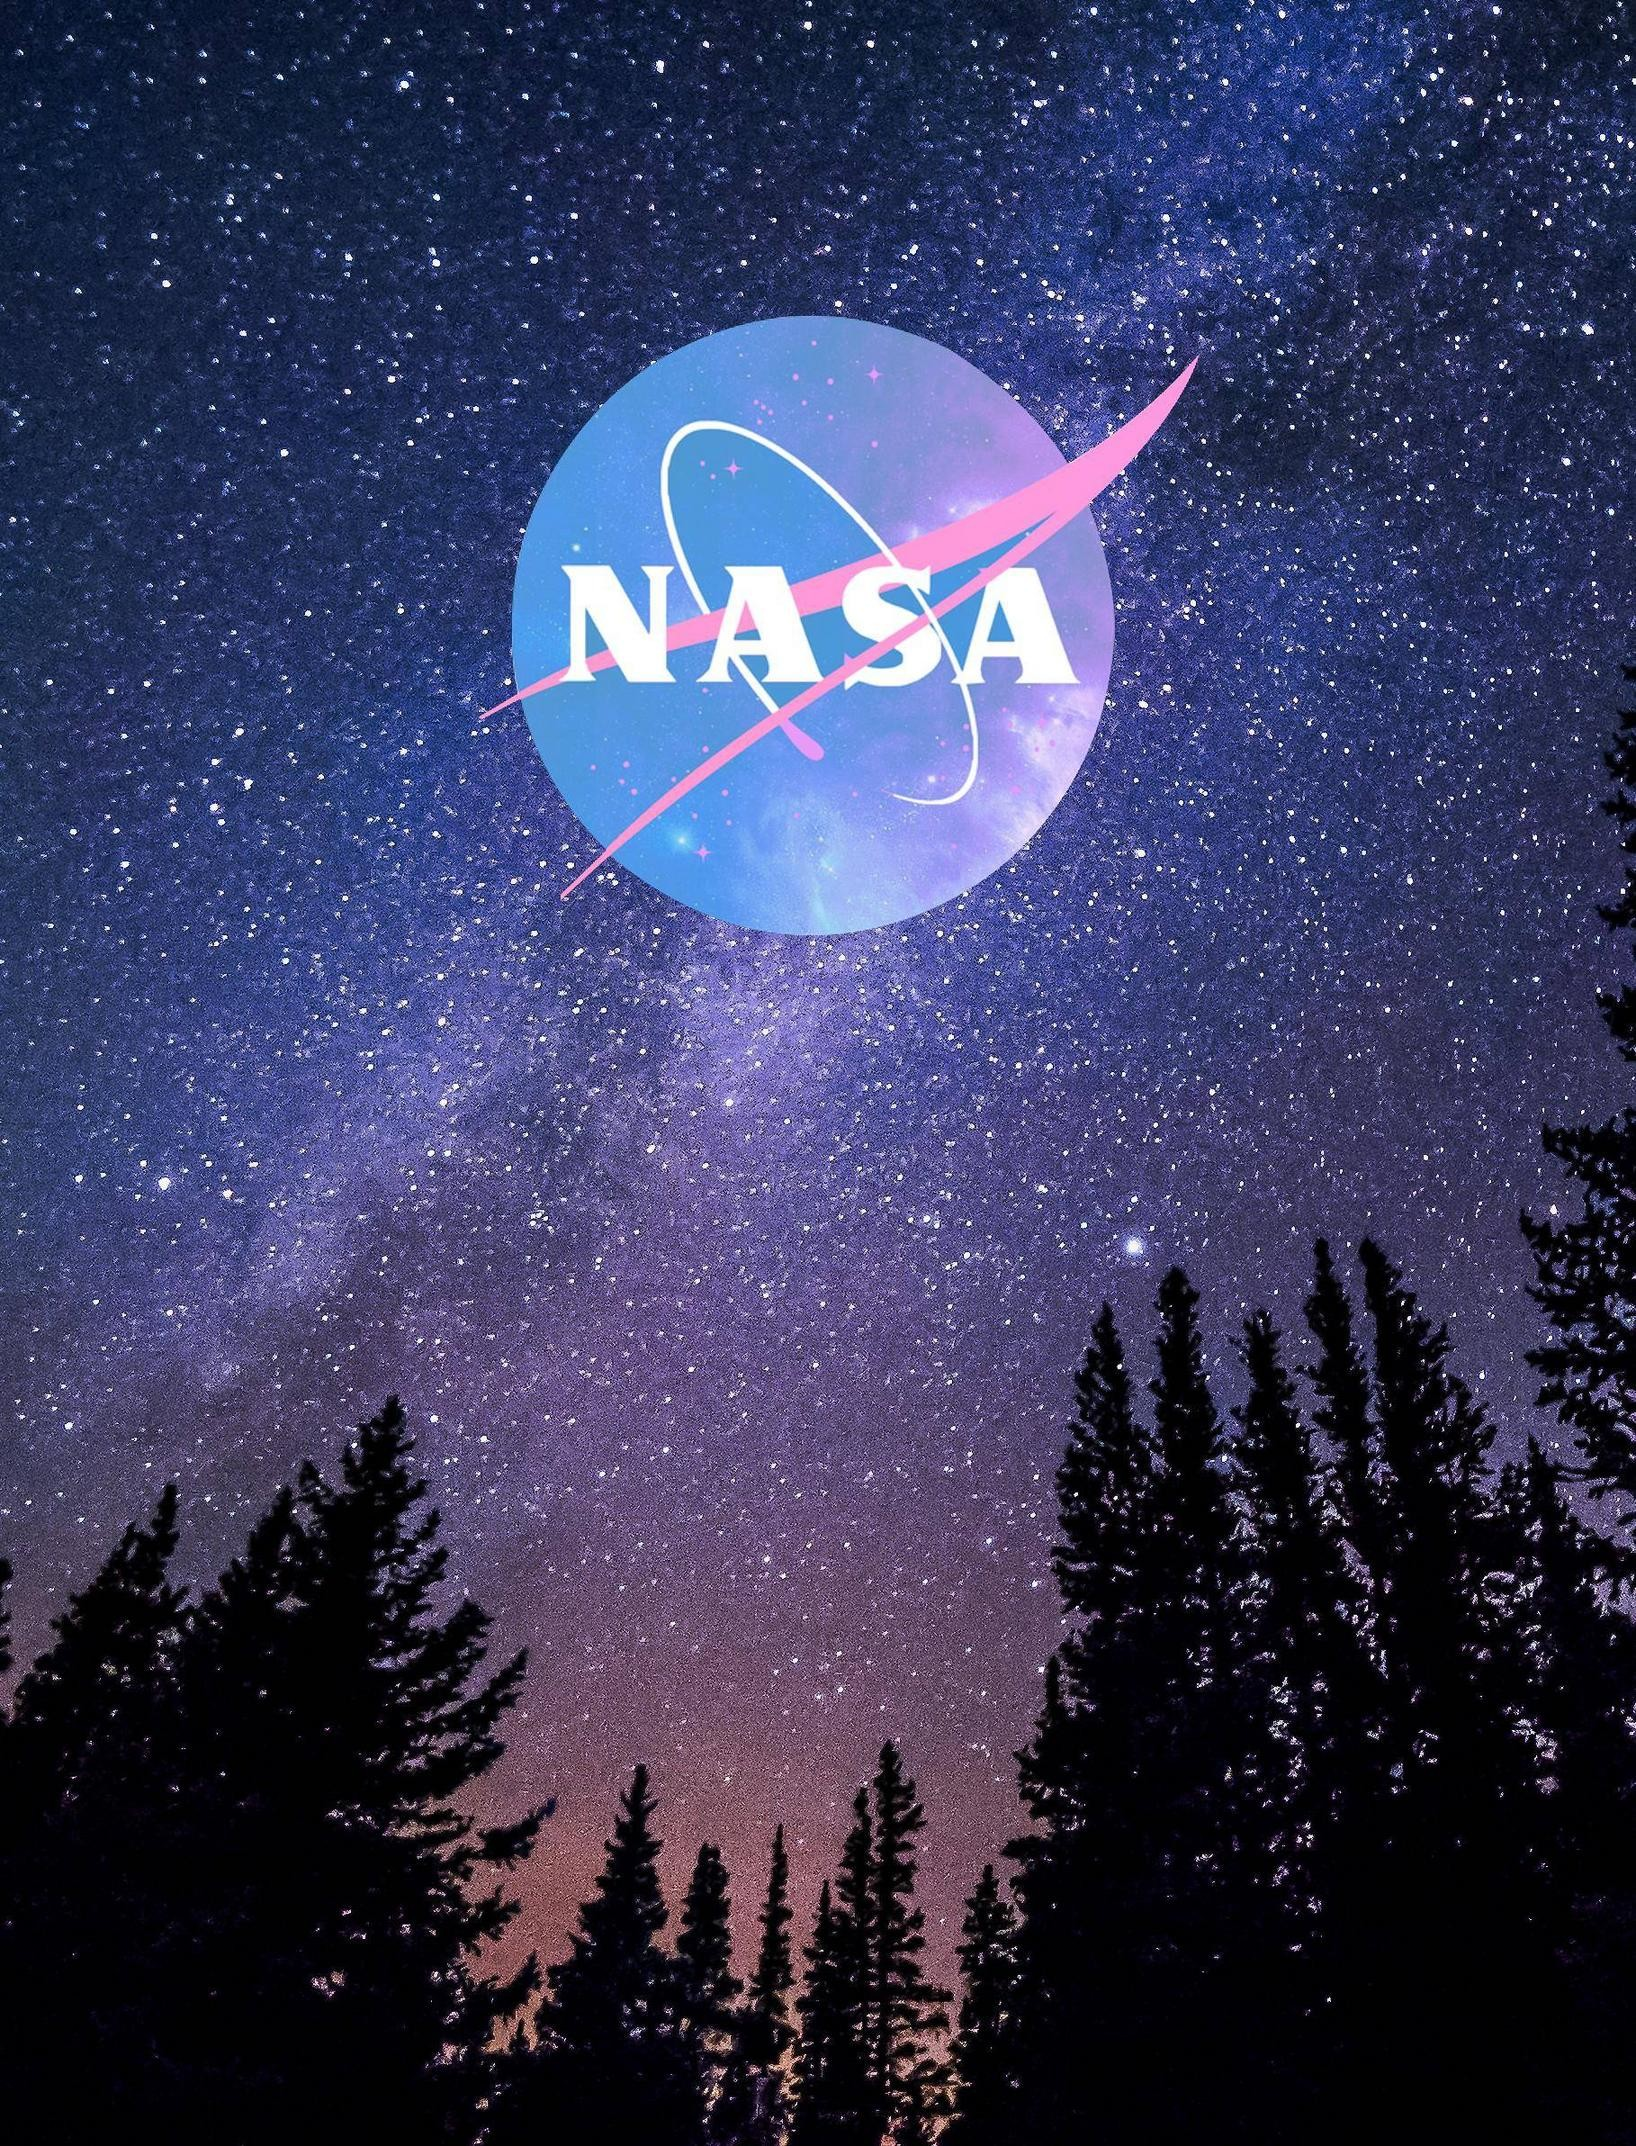 Wallpapers Nasa Posted By Christopher Sellers